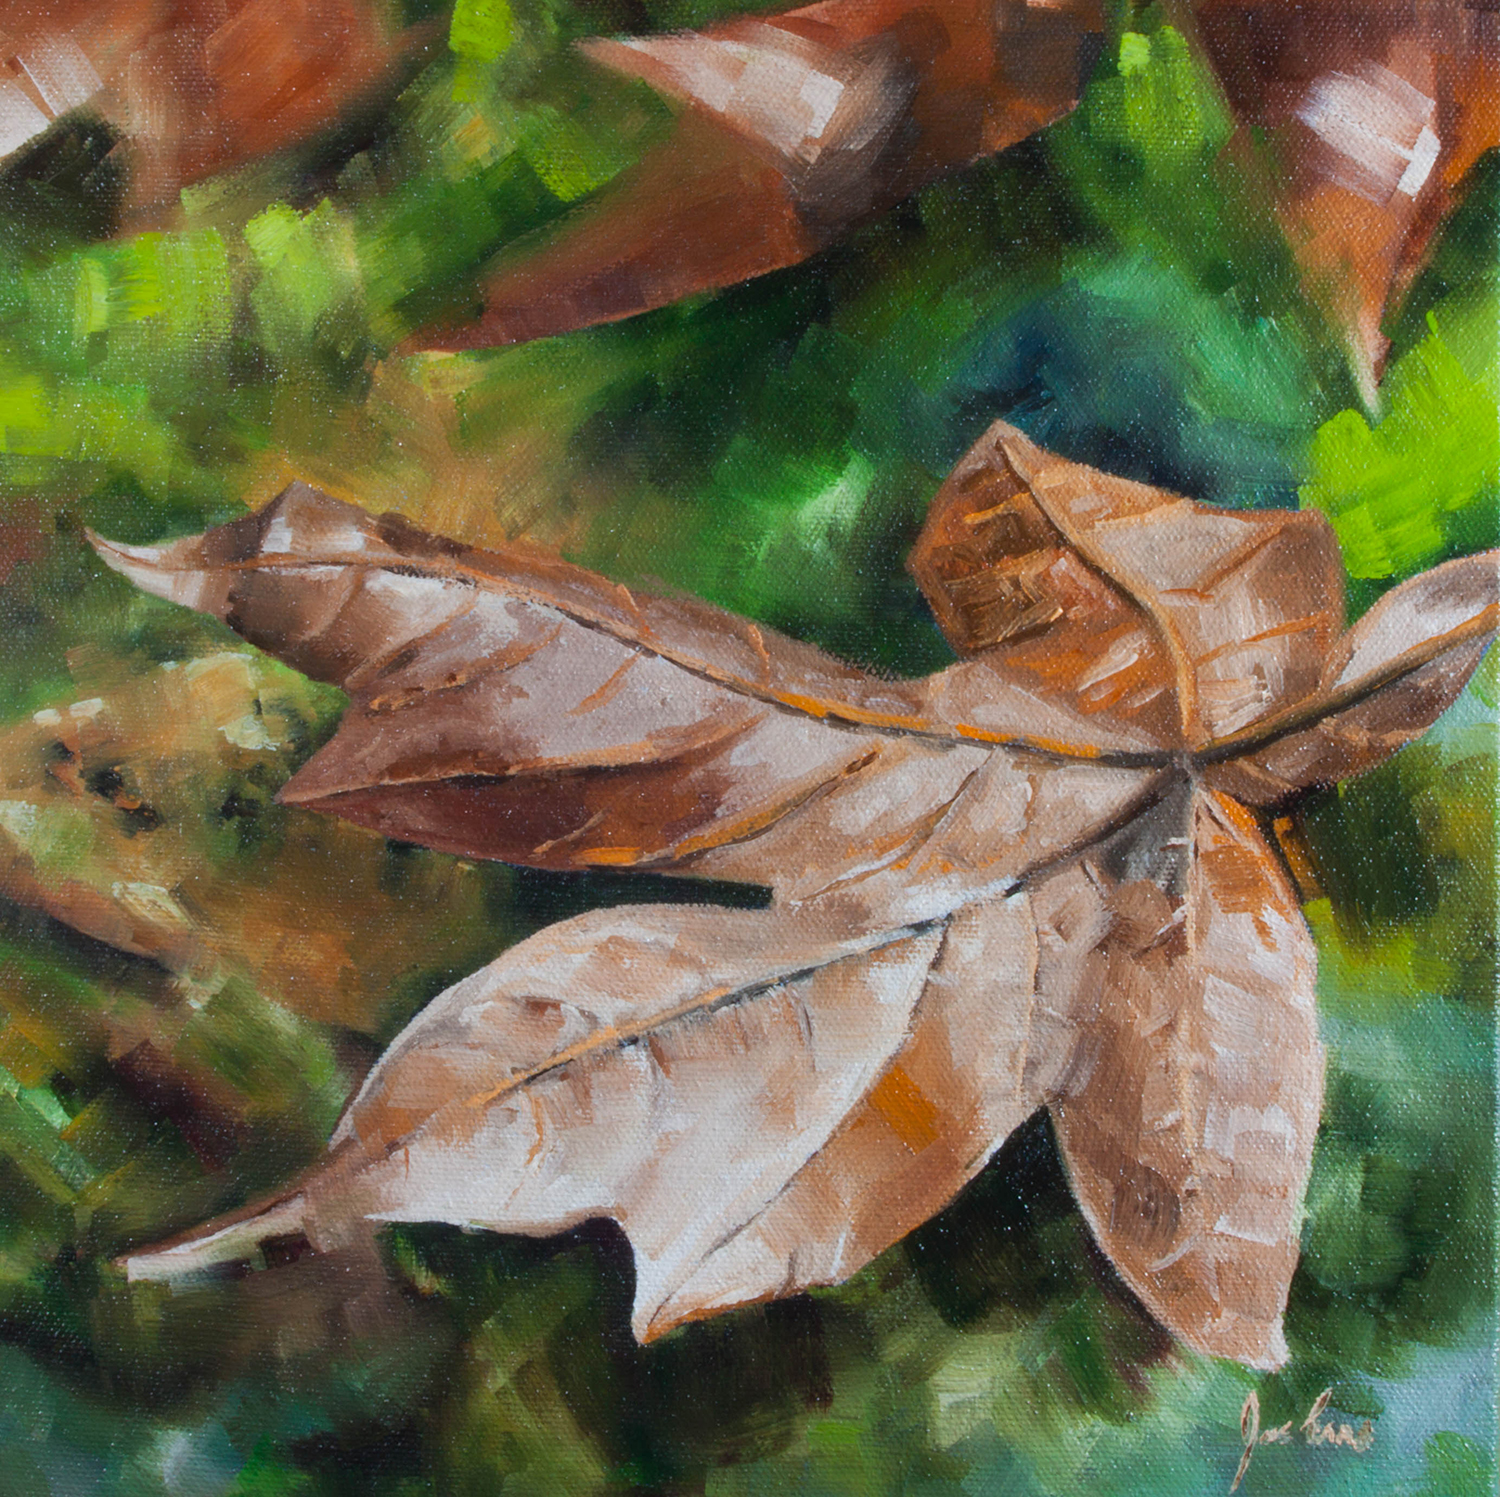 """Goldstream Maple Leaf"" is a still life oil painting by Joe Enns from a photo that Joe took along the Goldstream River in Goldstream Provincial Park on Vancouver Island, British Columbia."